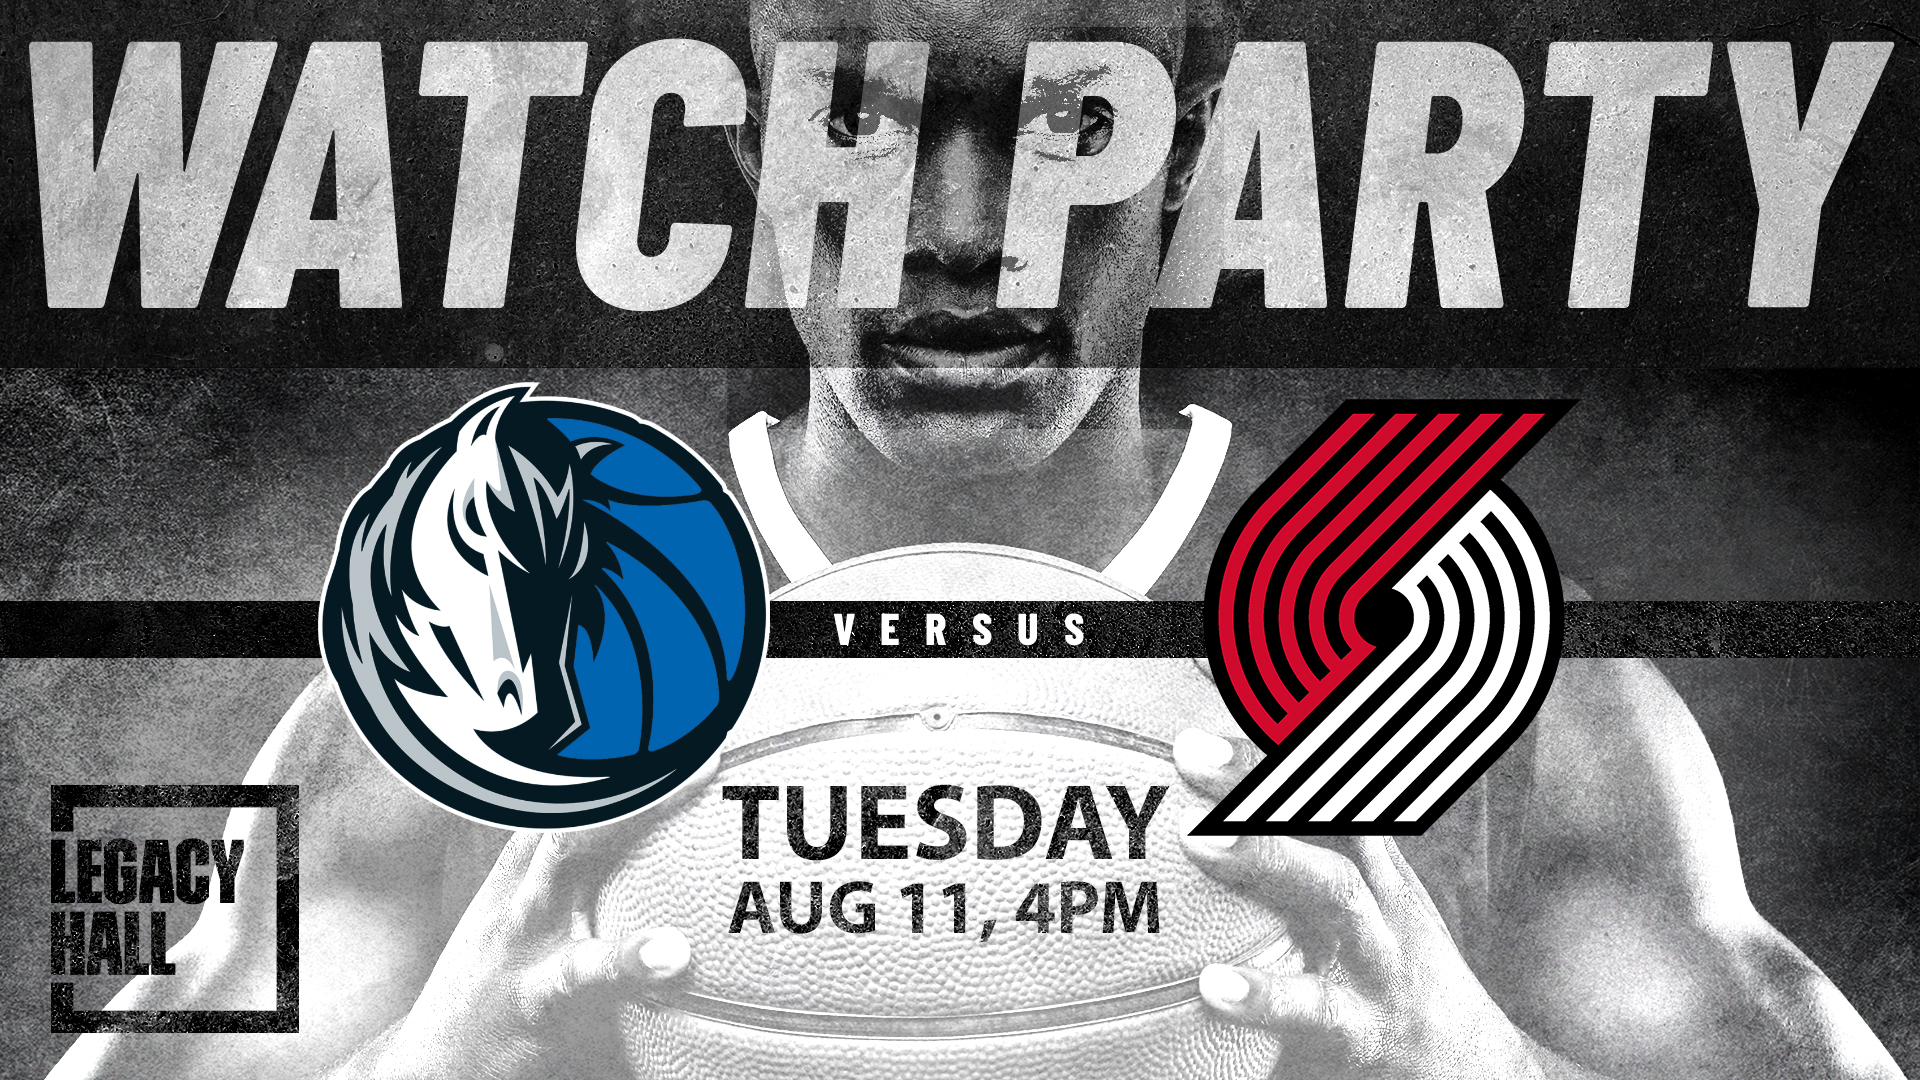 Promo image of Mavericks vs. Trailblazers Watch Party